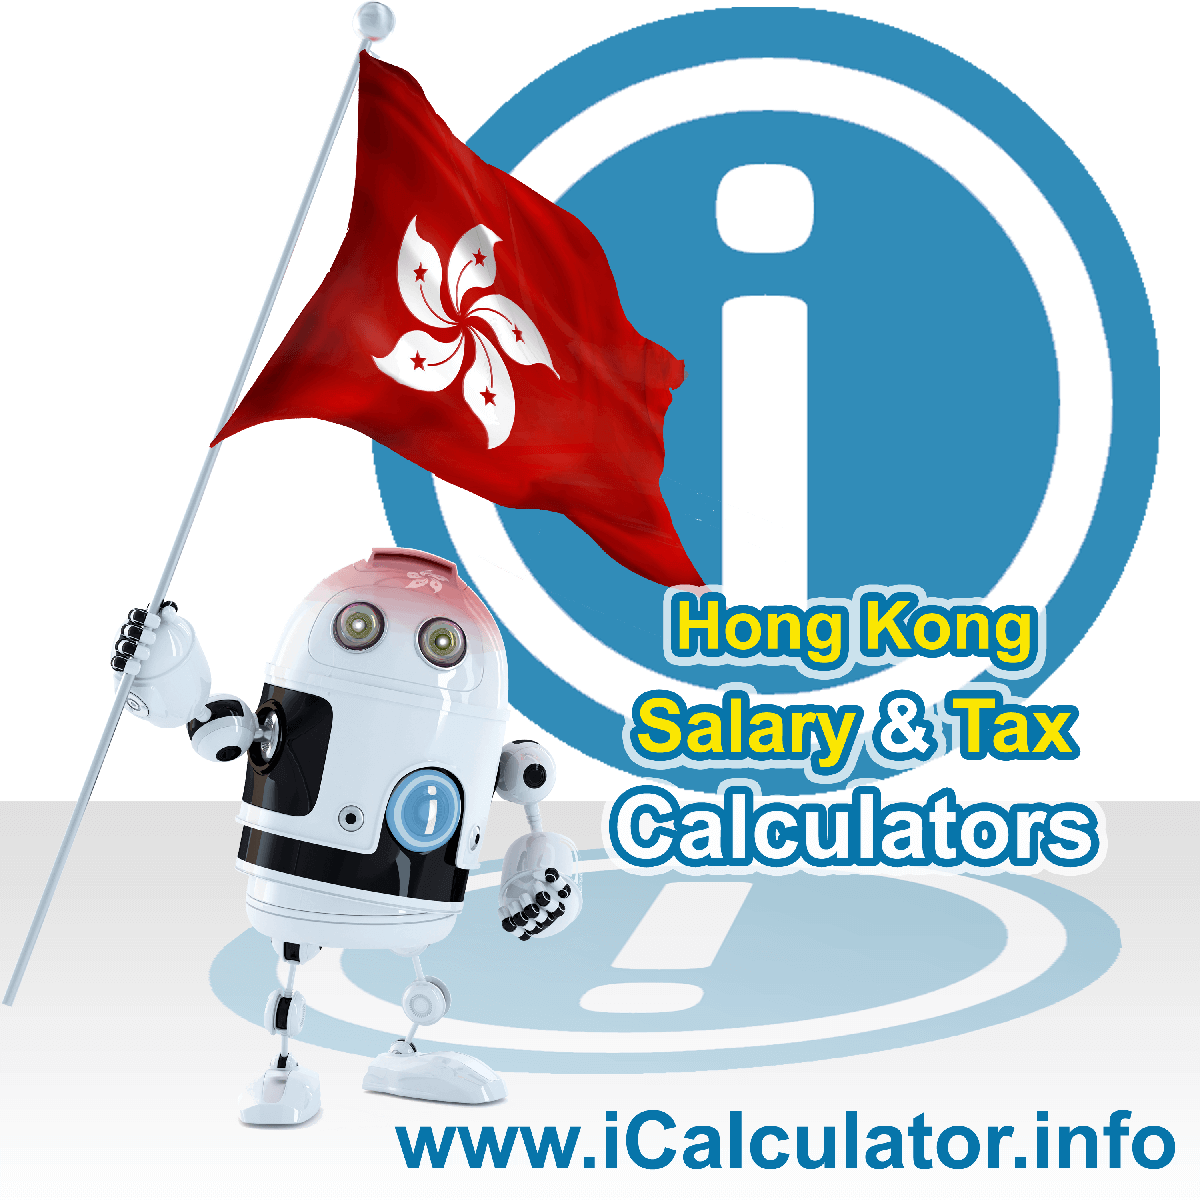 Hong Kong Wage Calculator. This image shows the Hong Kong flag and information relating to the tax formula for the Hong Kong Tax Calculator